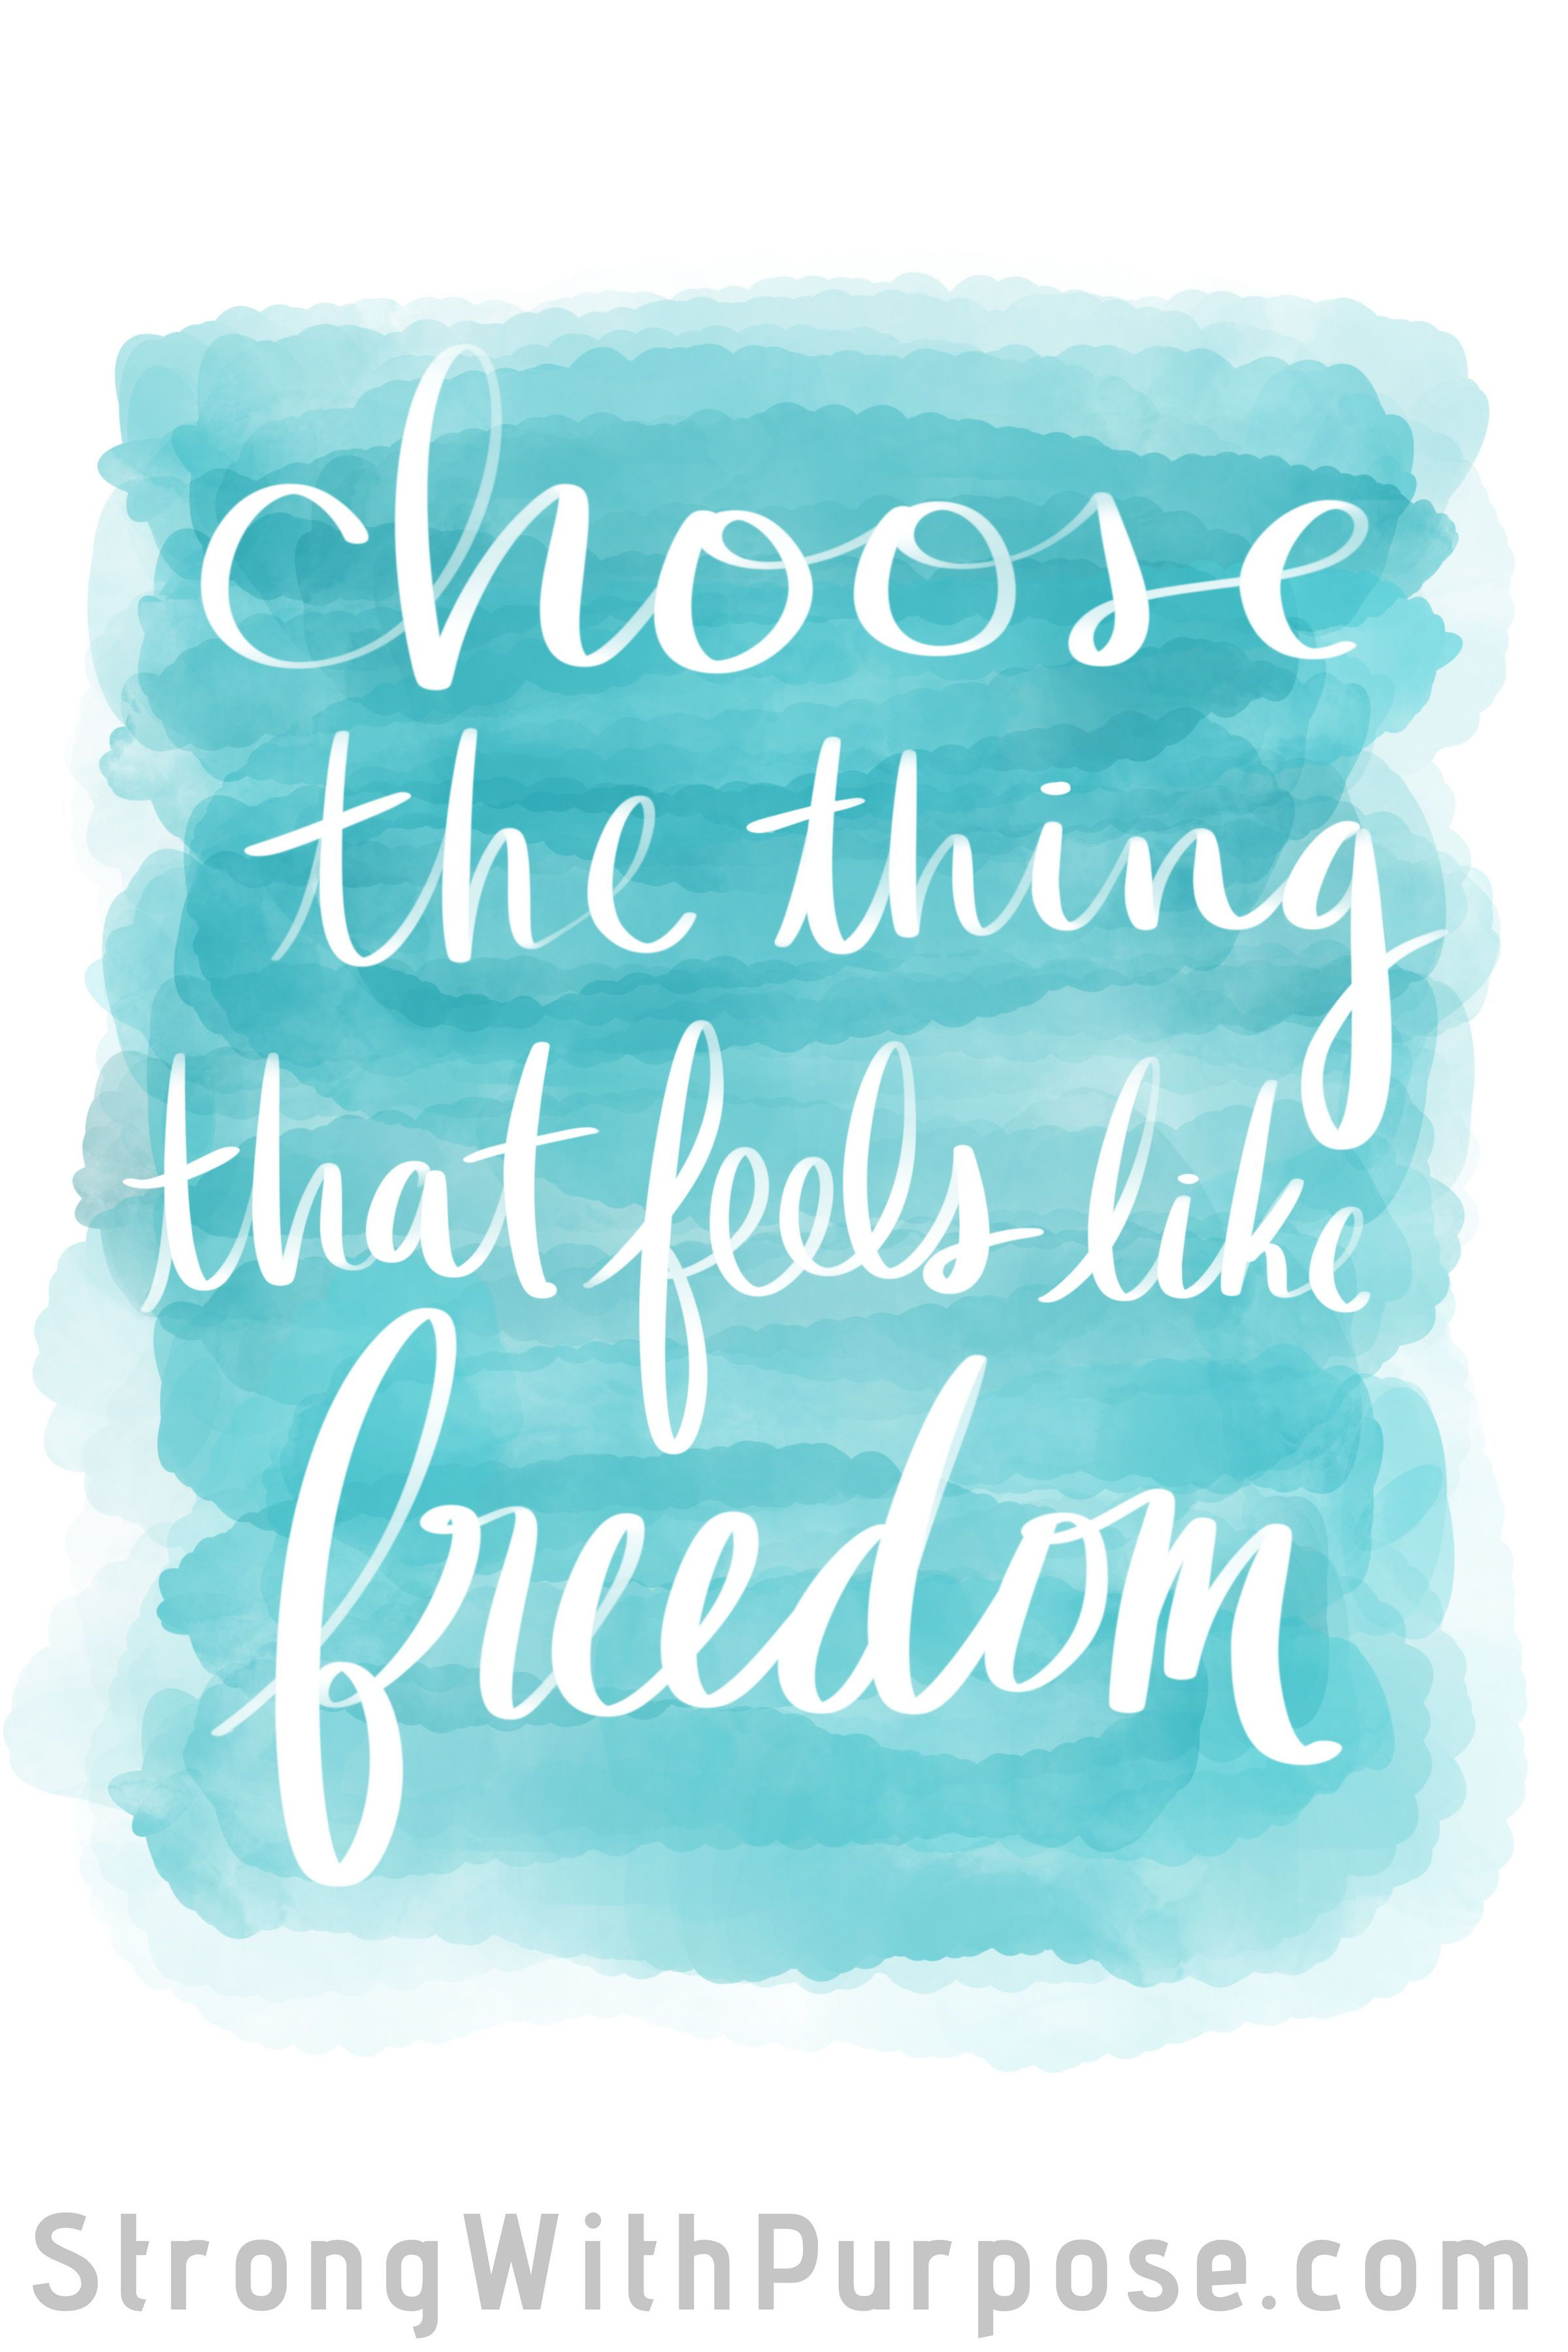 Choose Freedom Freedom quotes, Watercolor quote